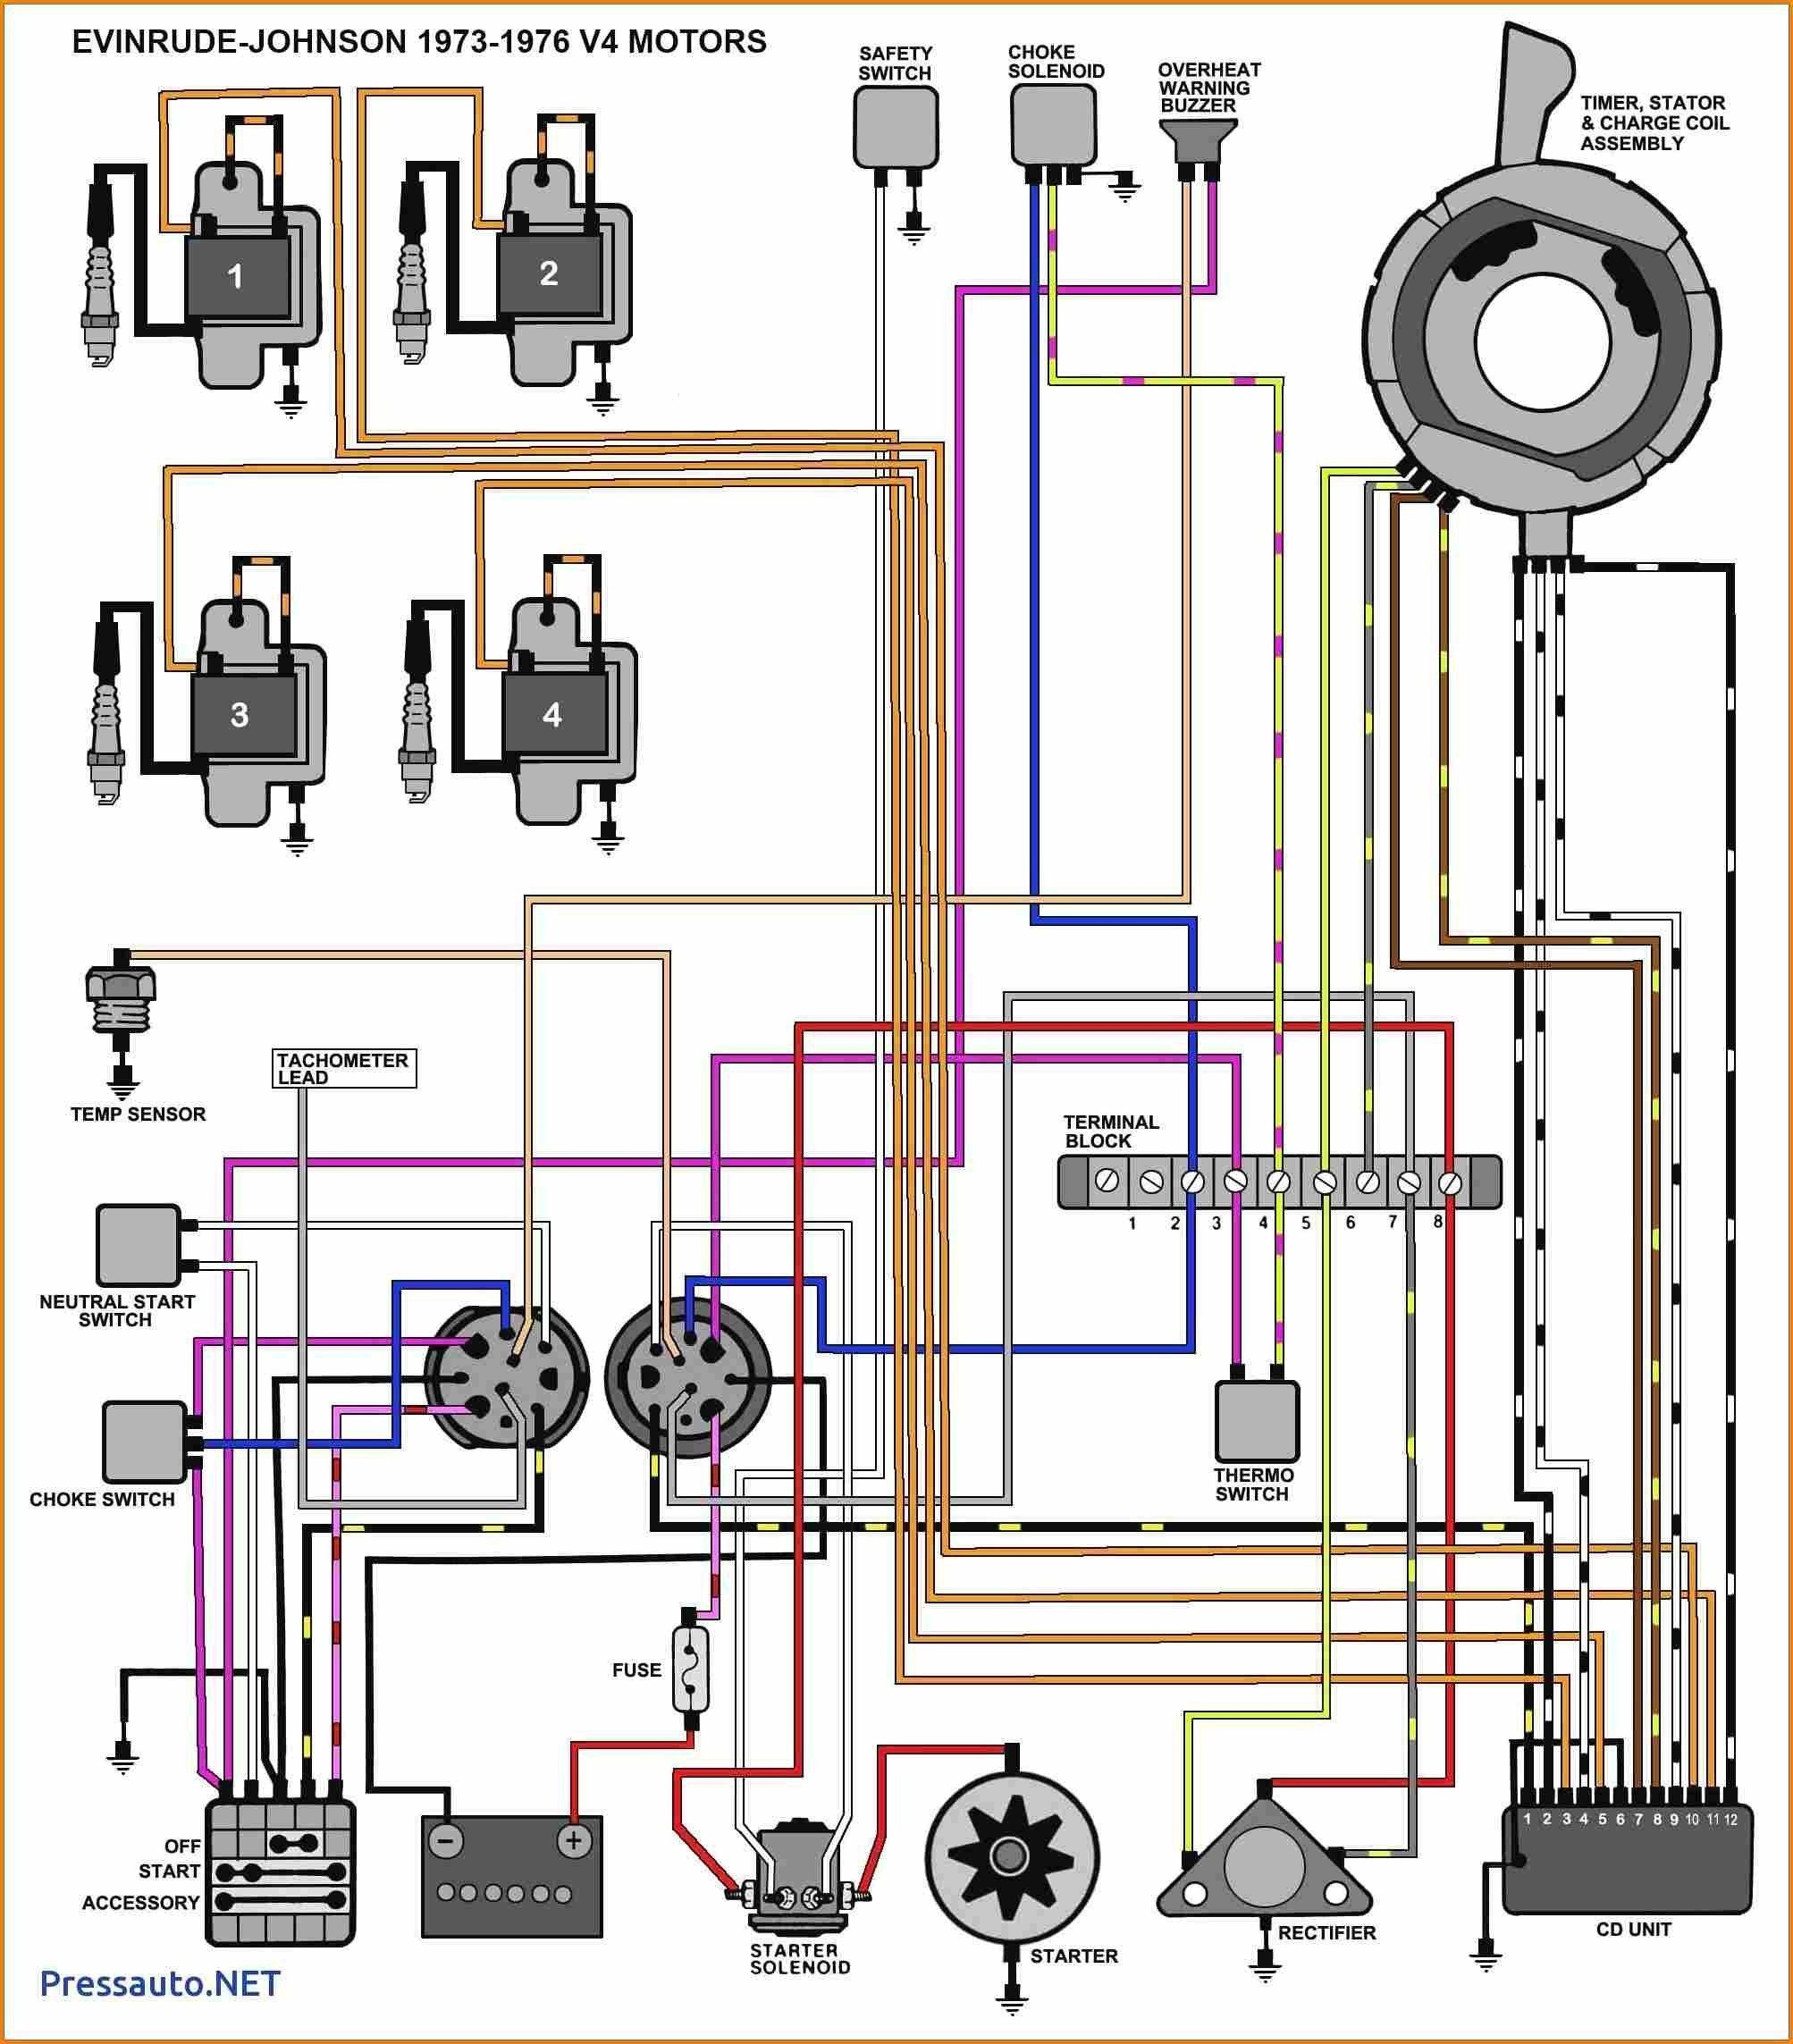 1972 Evinrude 100 Hp Wiring Diagram In Addition Single Phase Motor